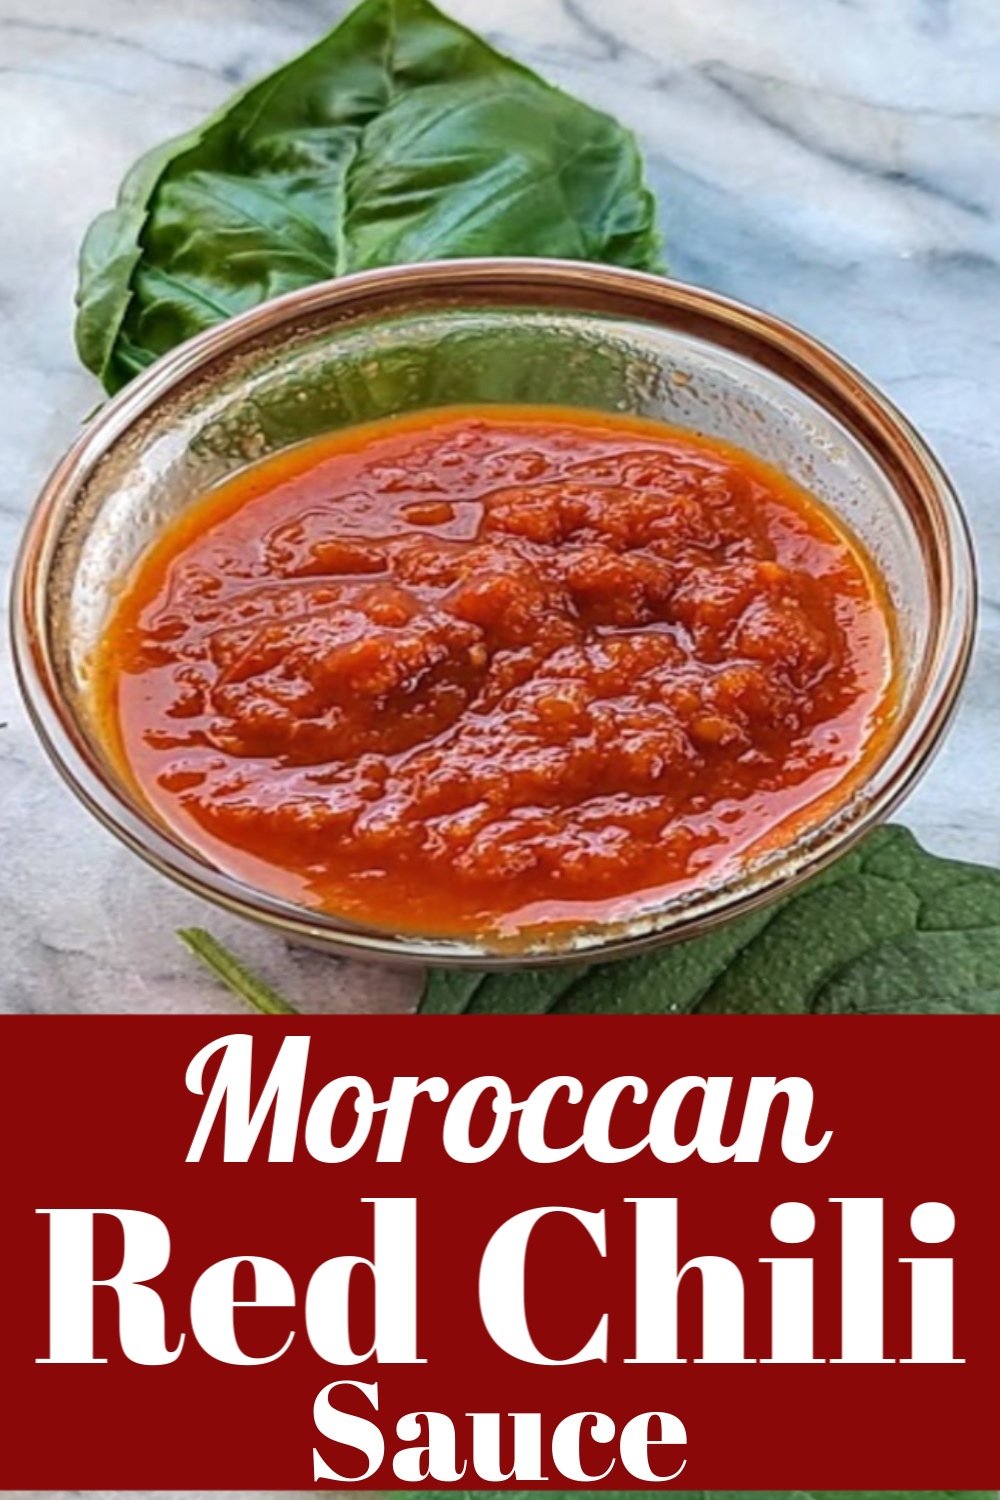 Moroccan Red Chili Sauce in a bowl.